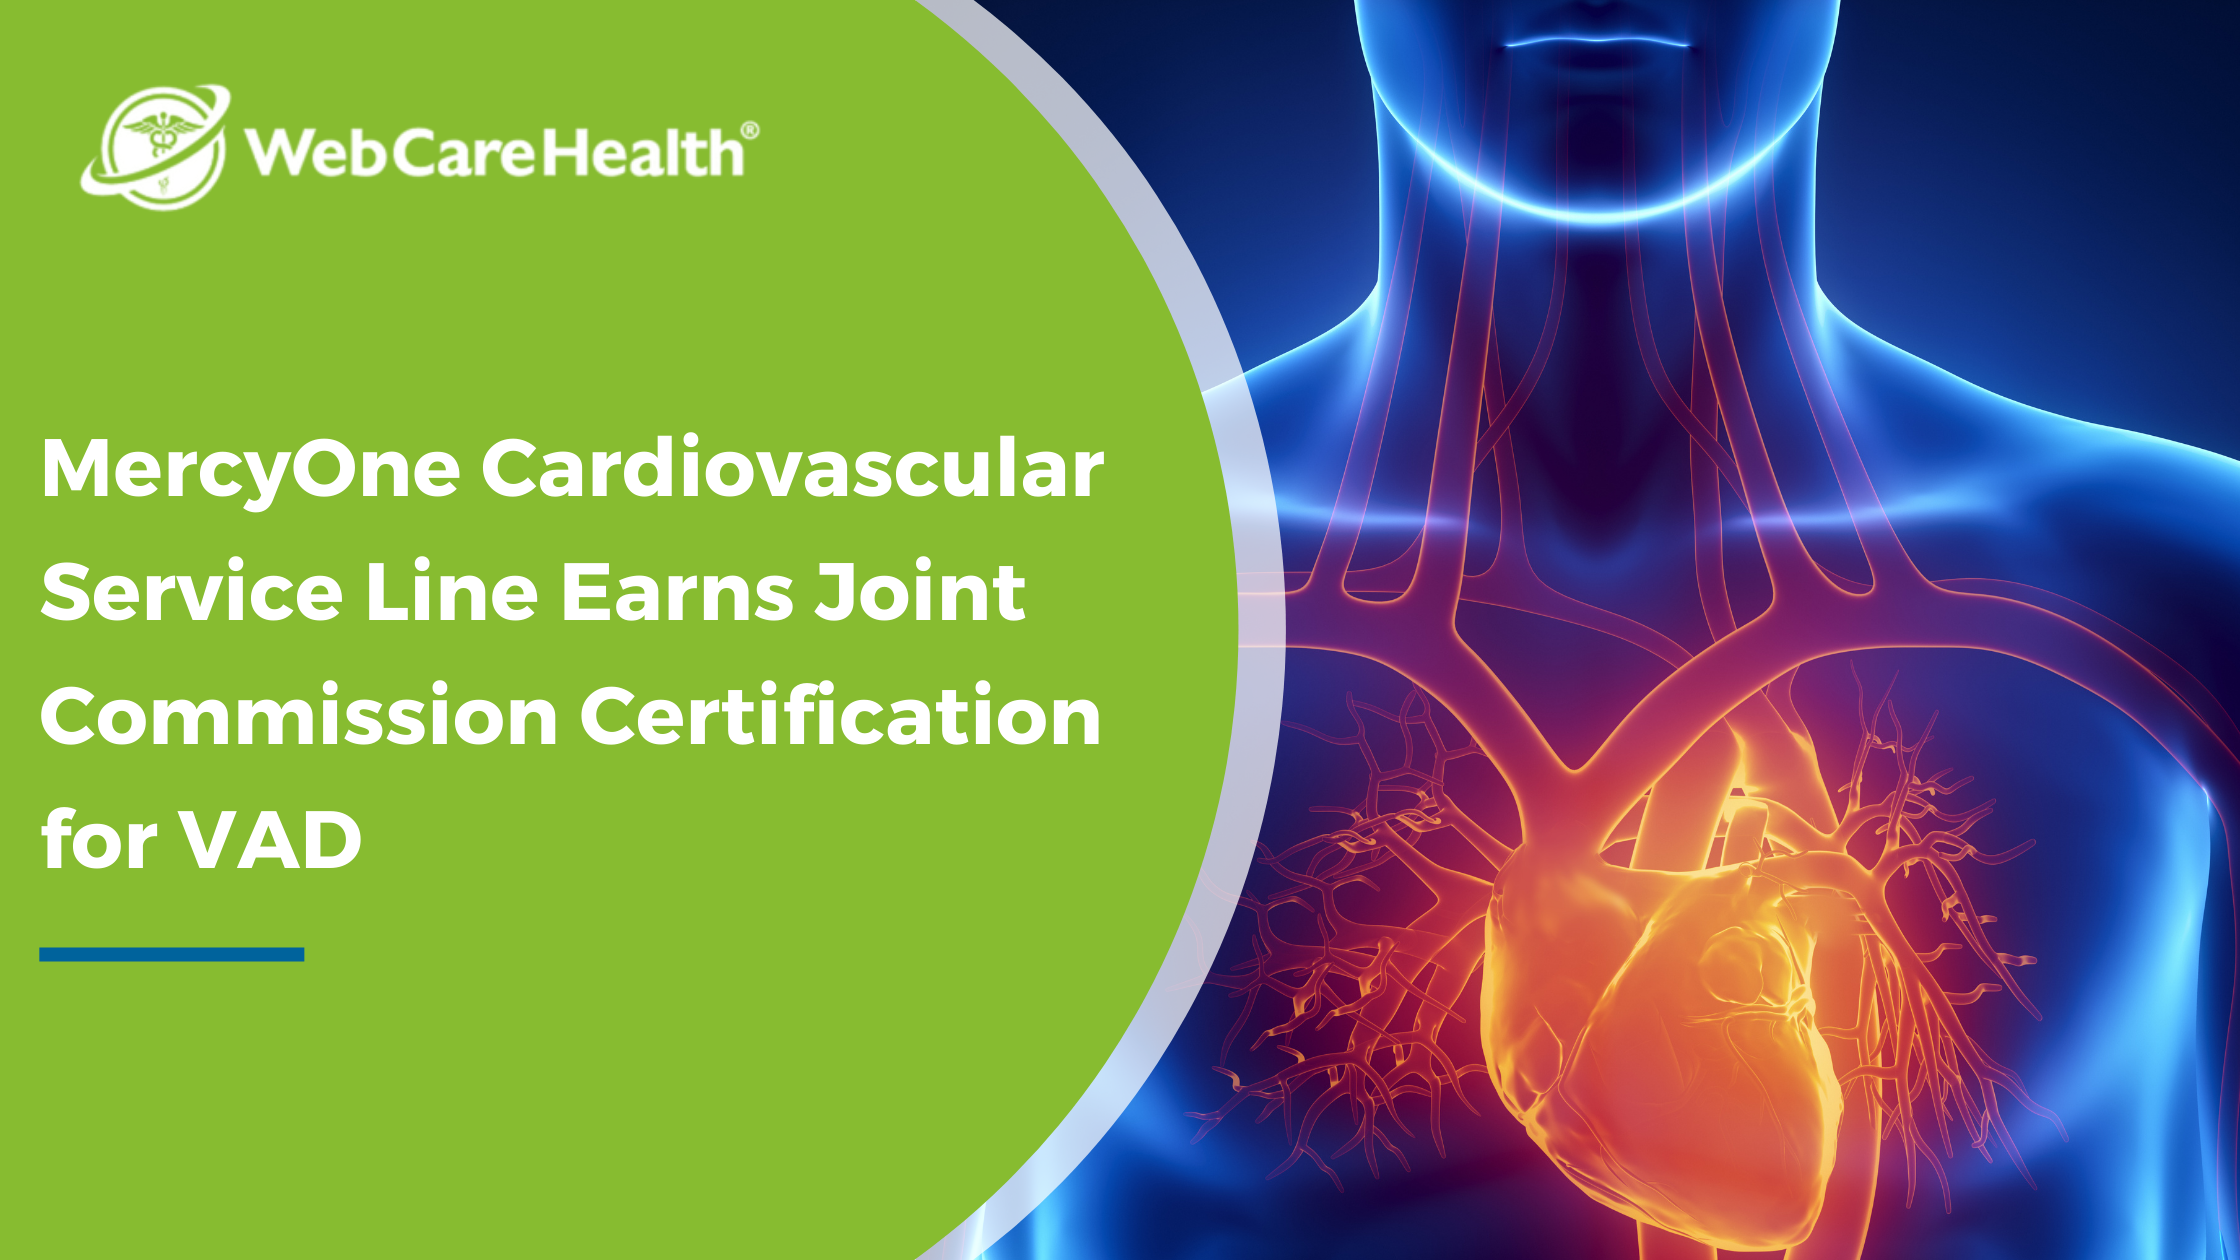 MercyOne Cardiovascular Service Line Earns Joint Commission Certification for VAD